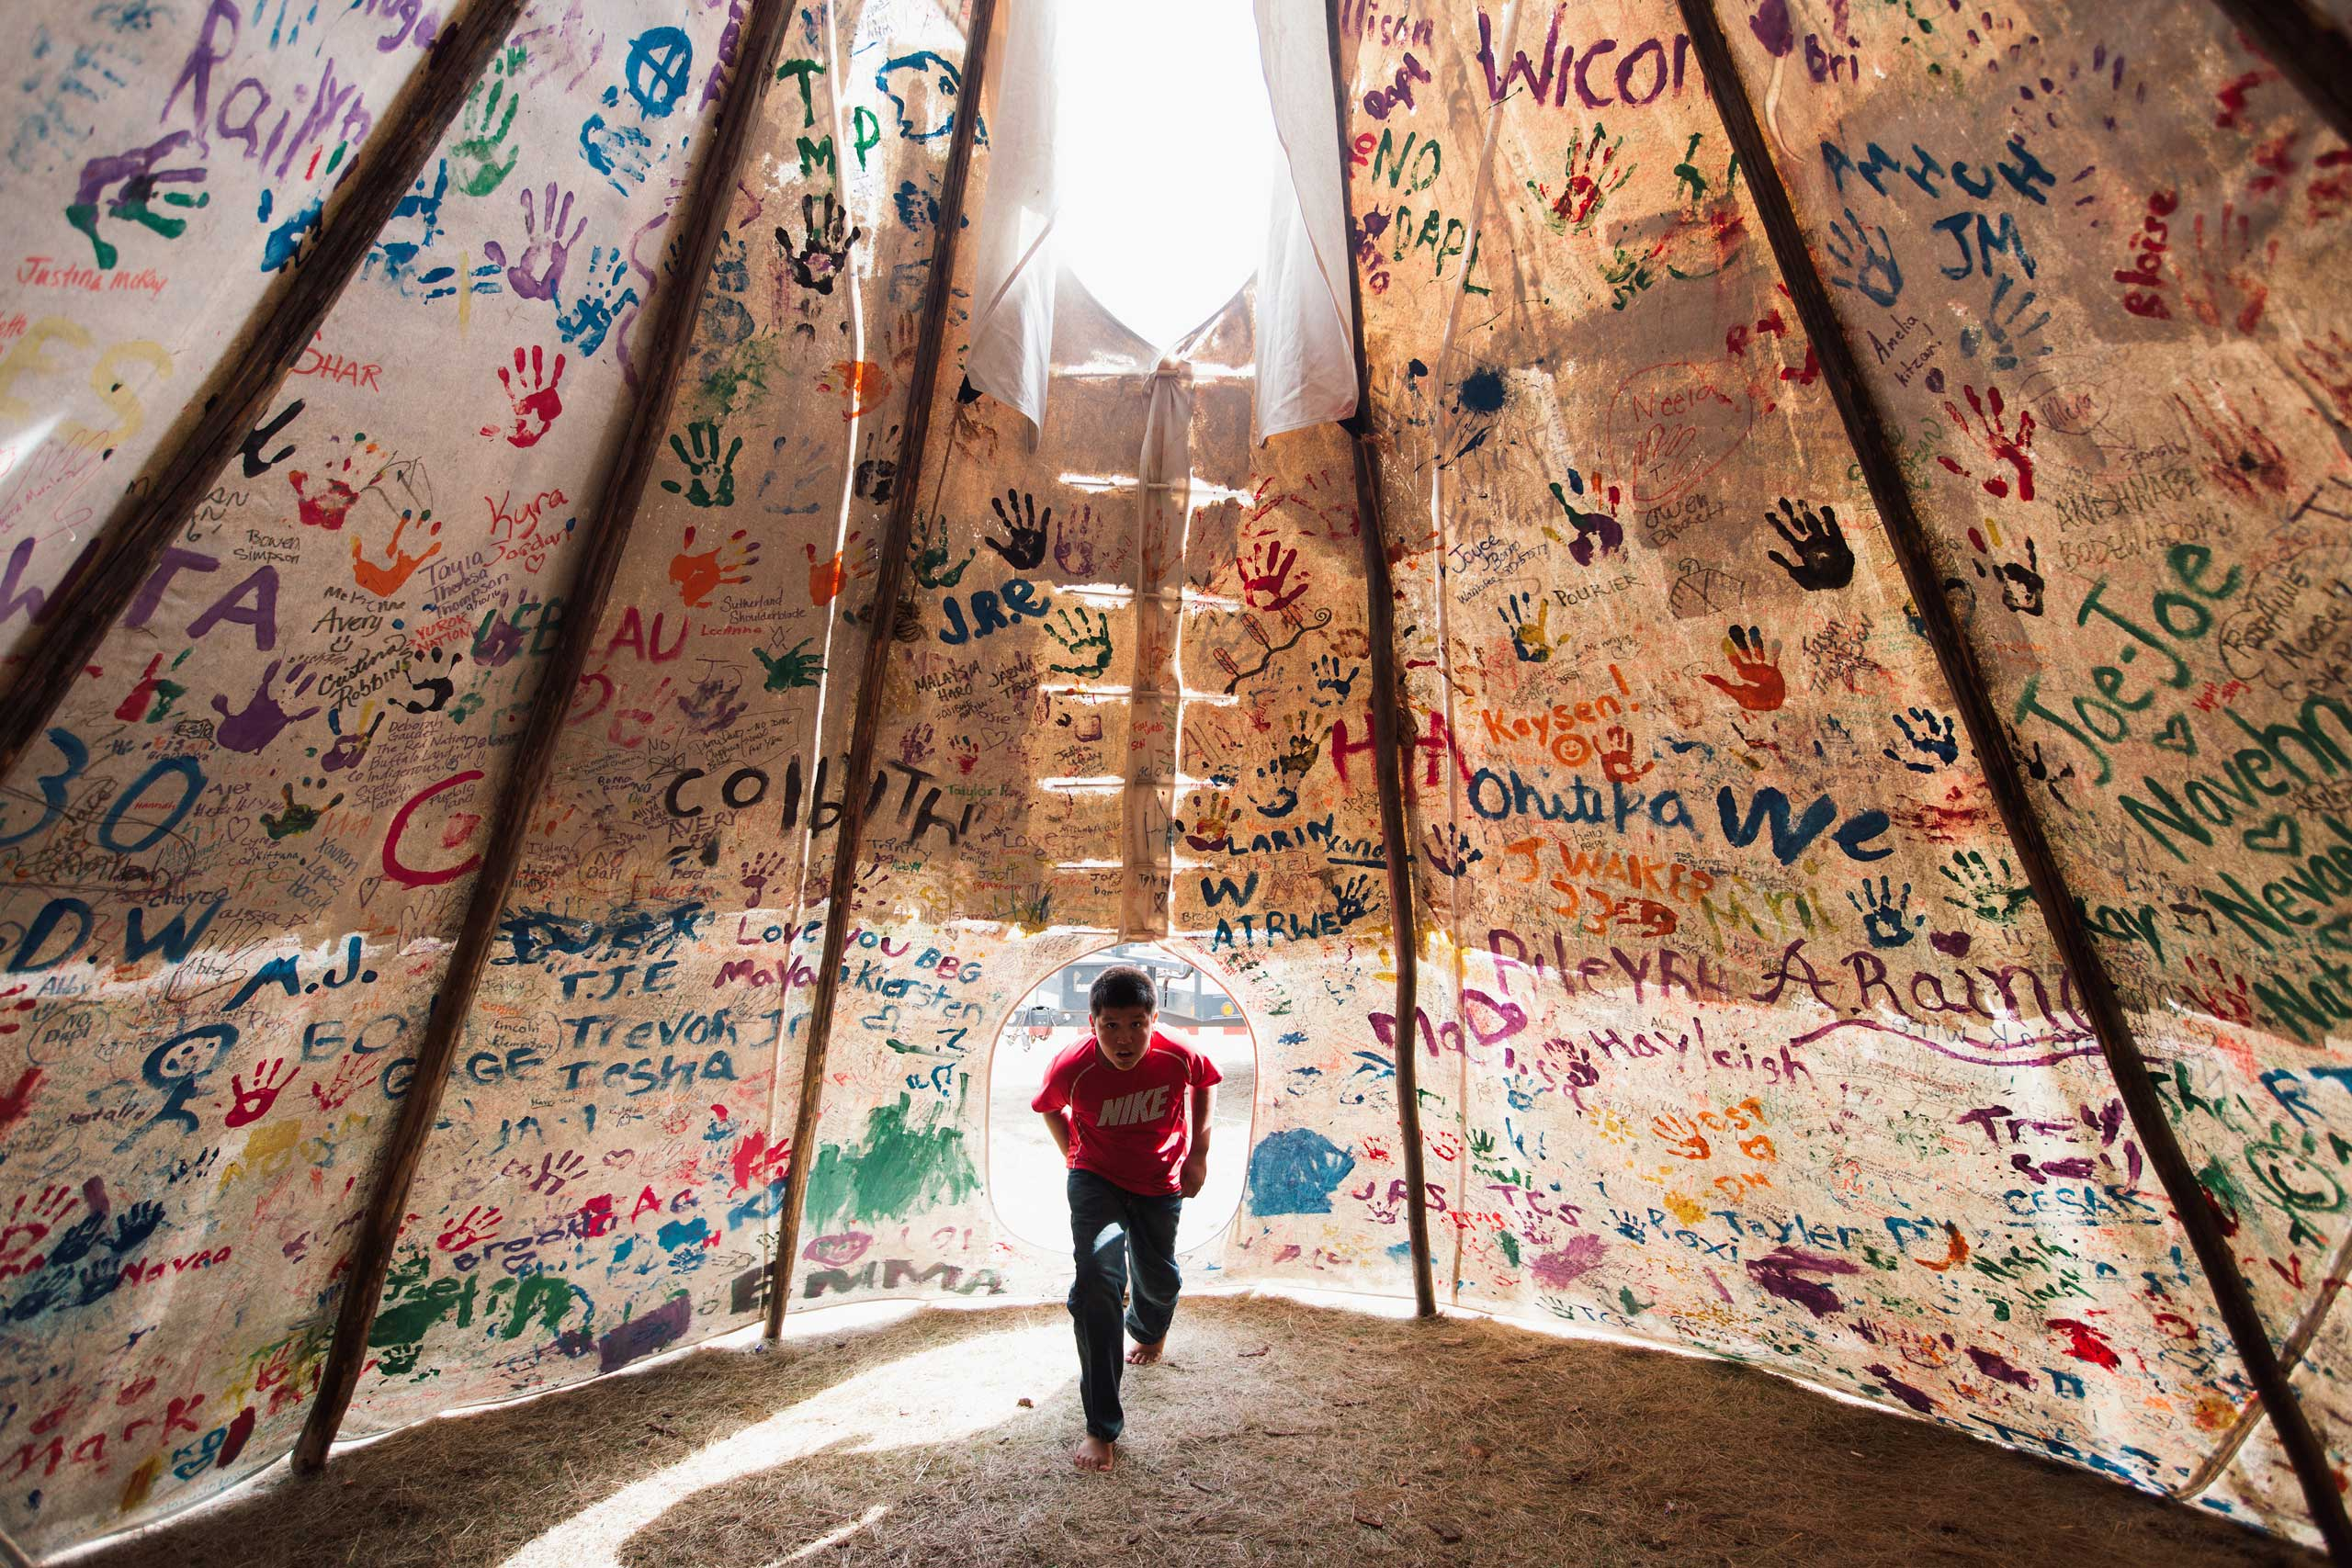 Jesse Jaso, 12, enters the Unity Teepee, at the Sacred Stone Camp near Cannonball, N.D. on Sept. 10, 2016. The teepee is signed by camp supporters from all over North America and around the world.